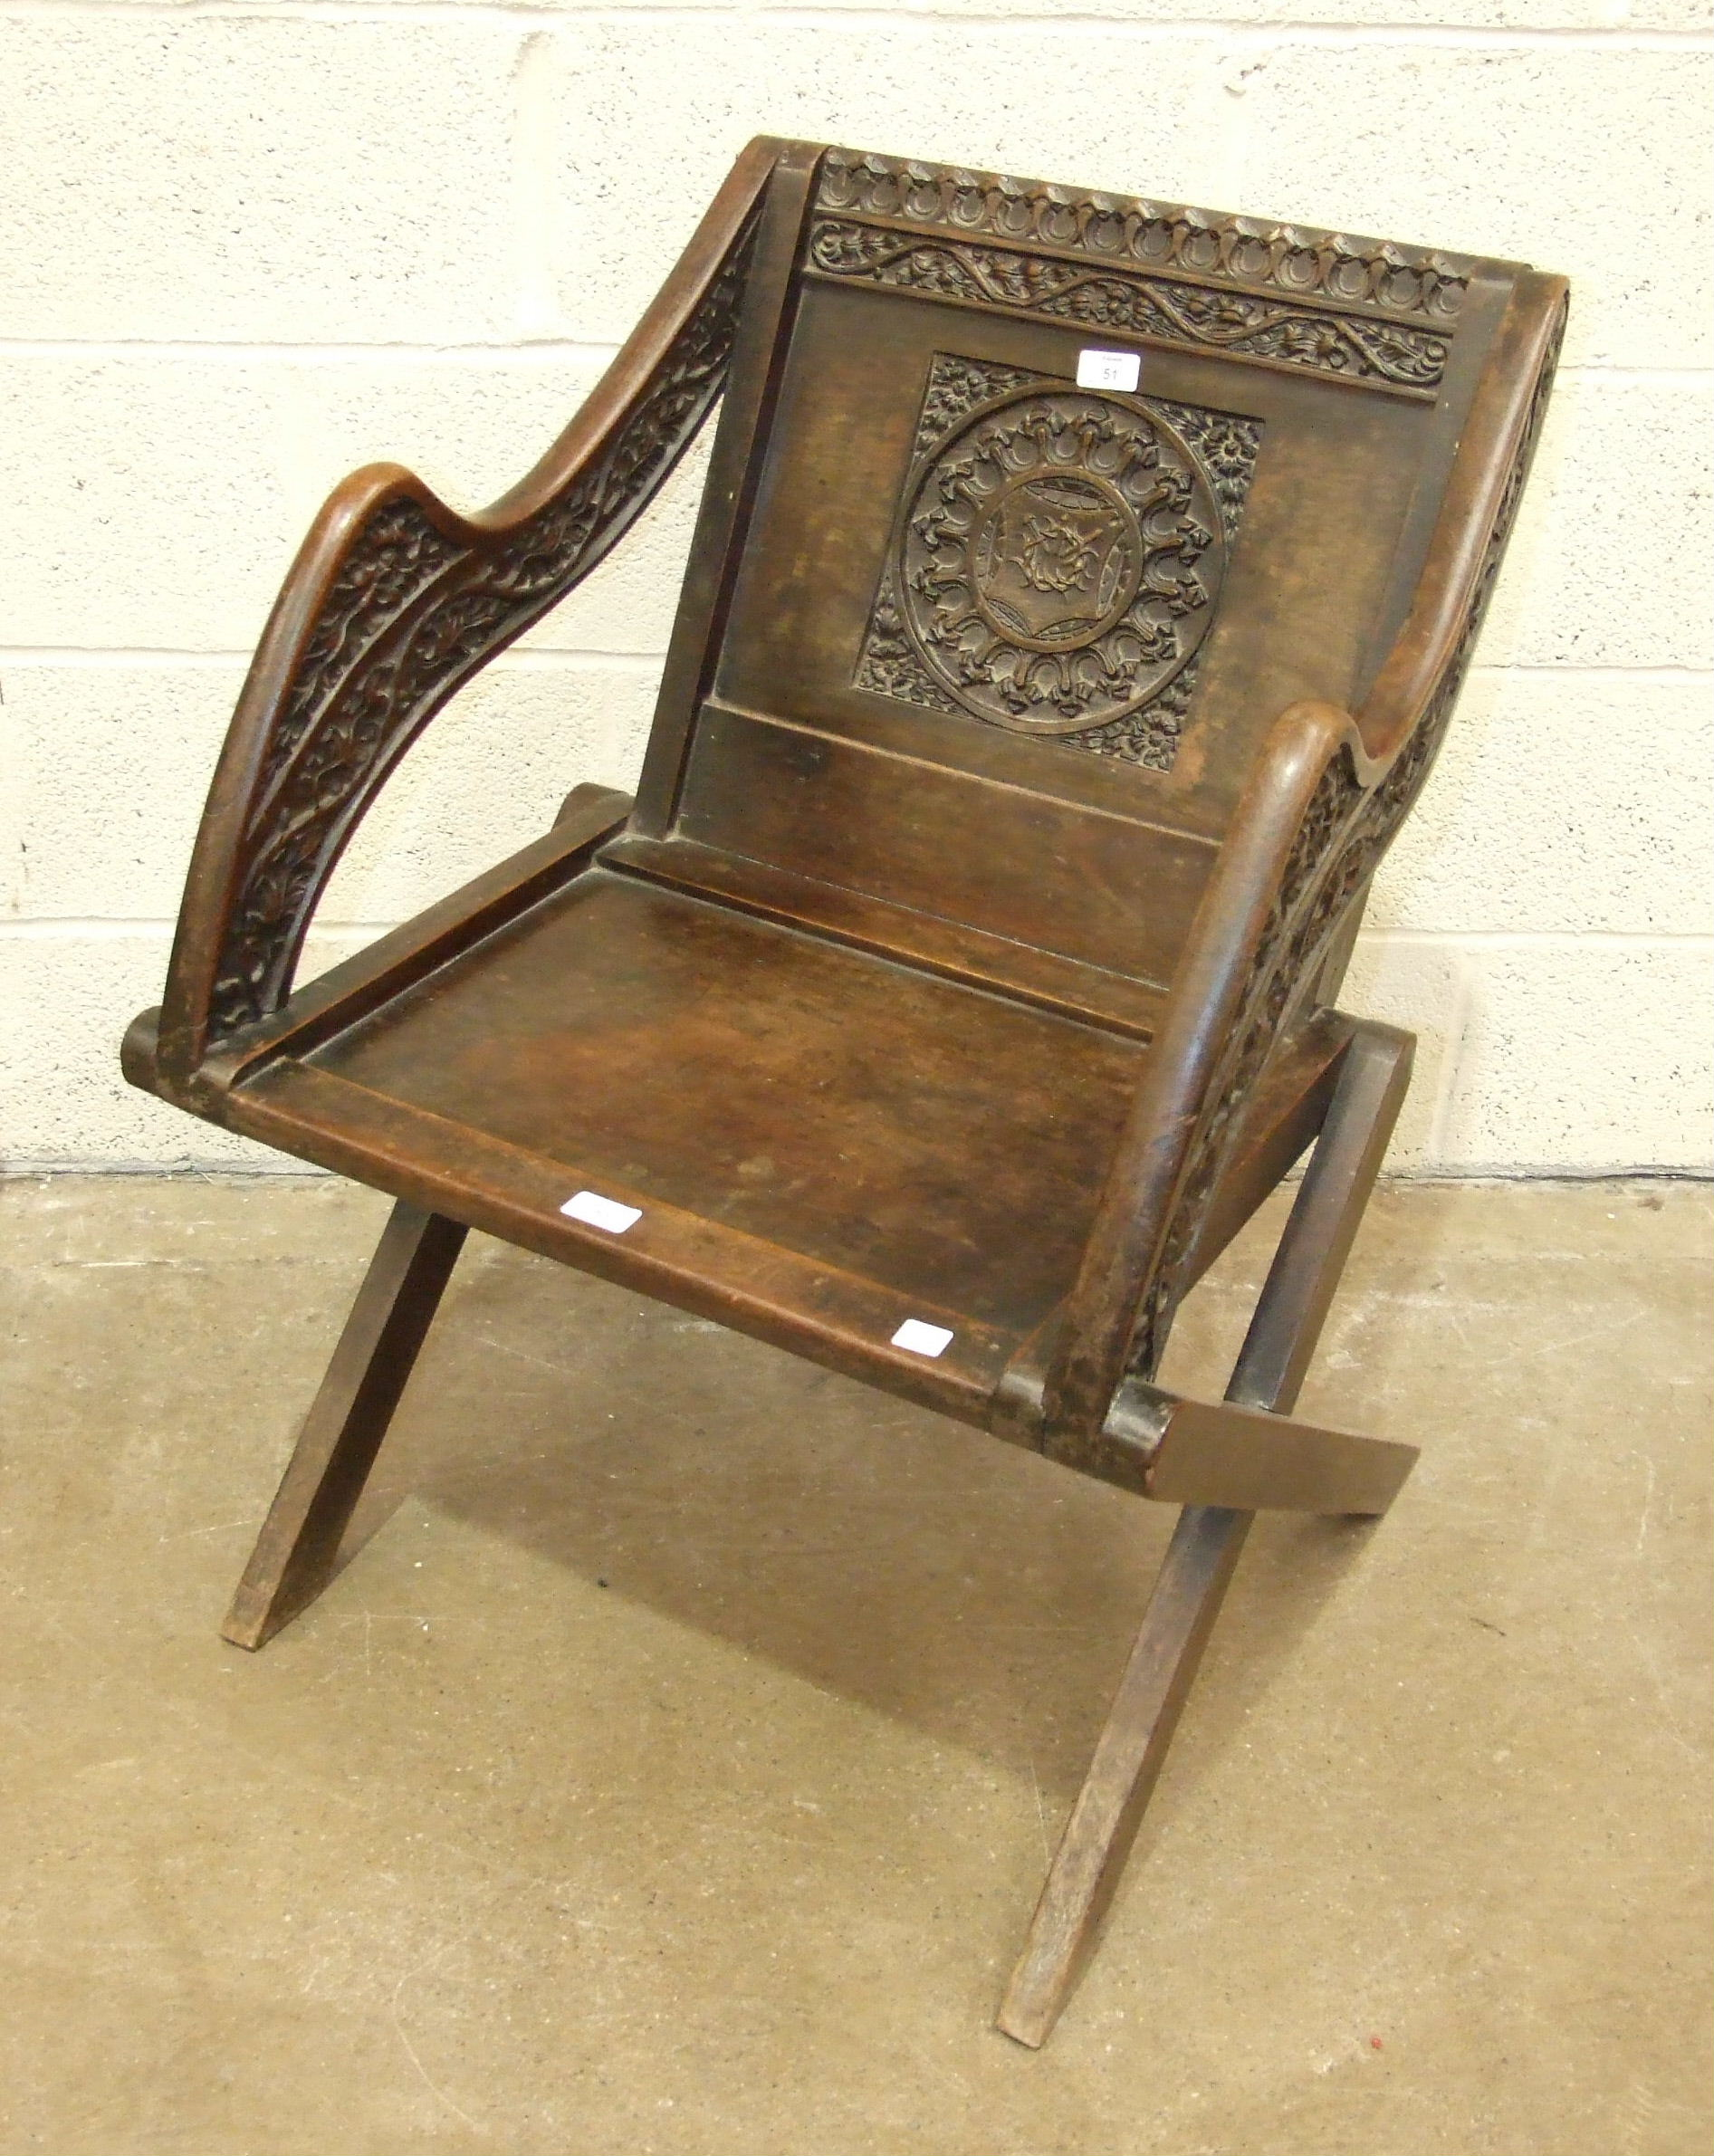 A copy of a mid-16th century hardwood folding chair, on X-frame, with carved back and arms, 87cm